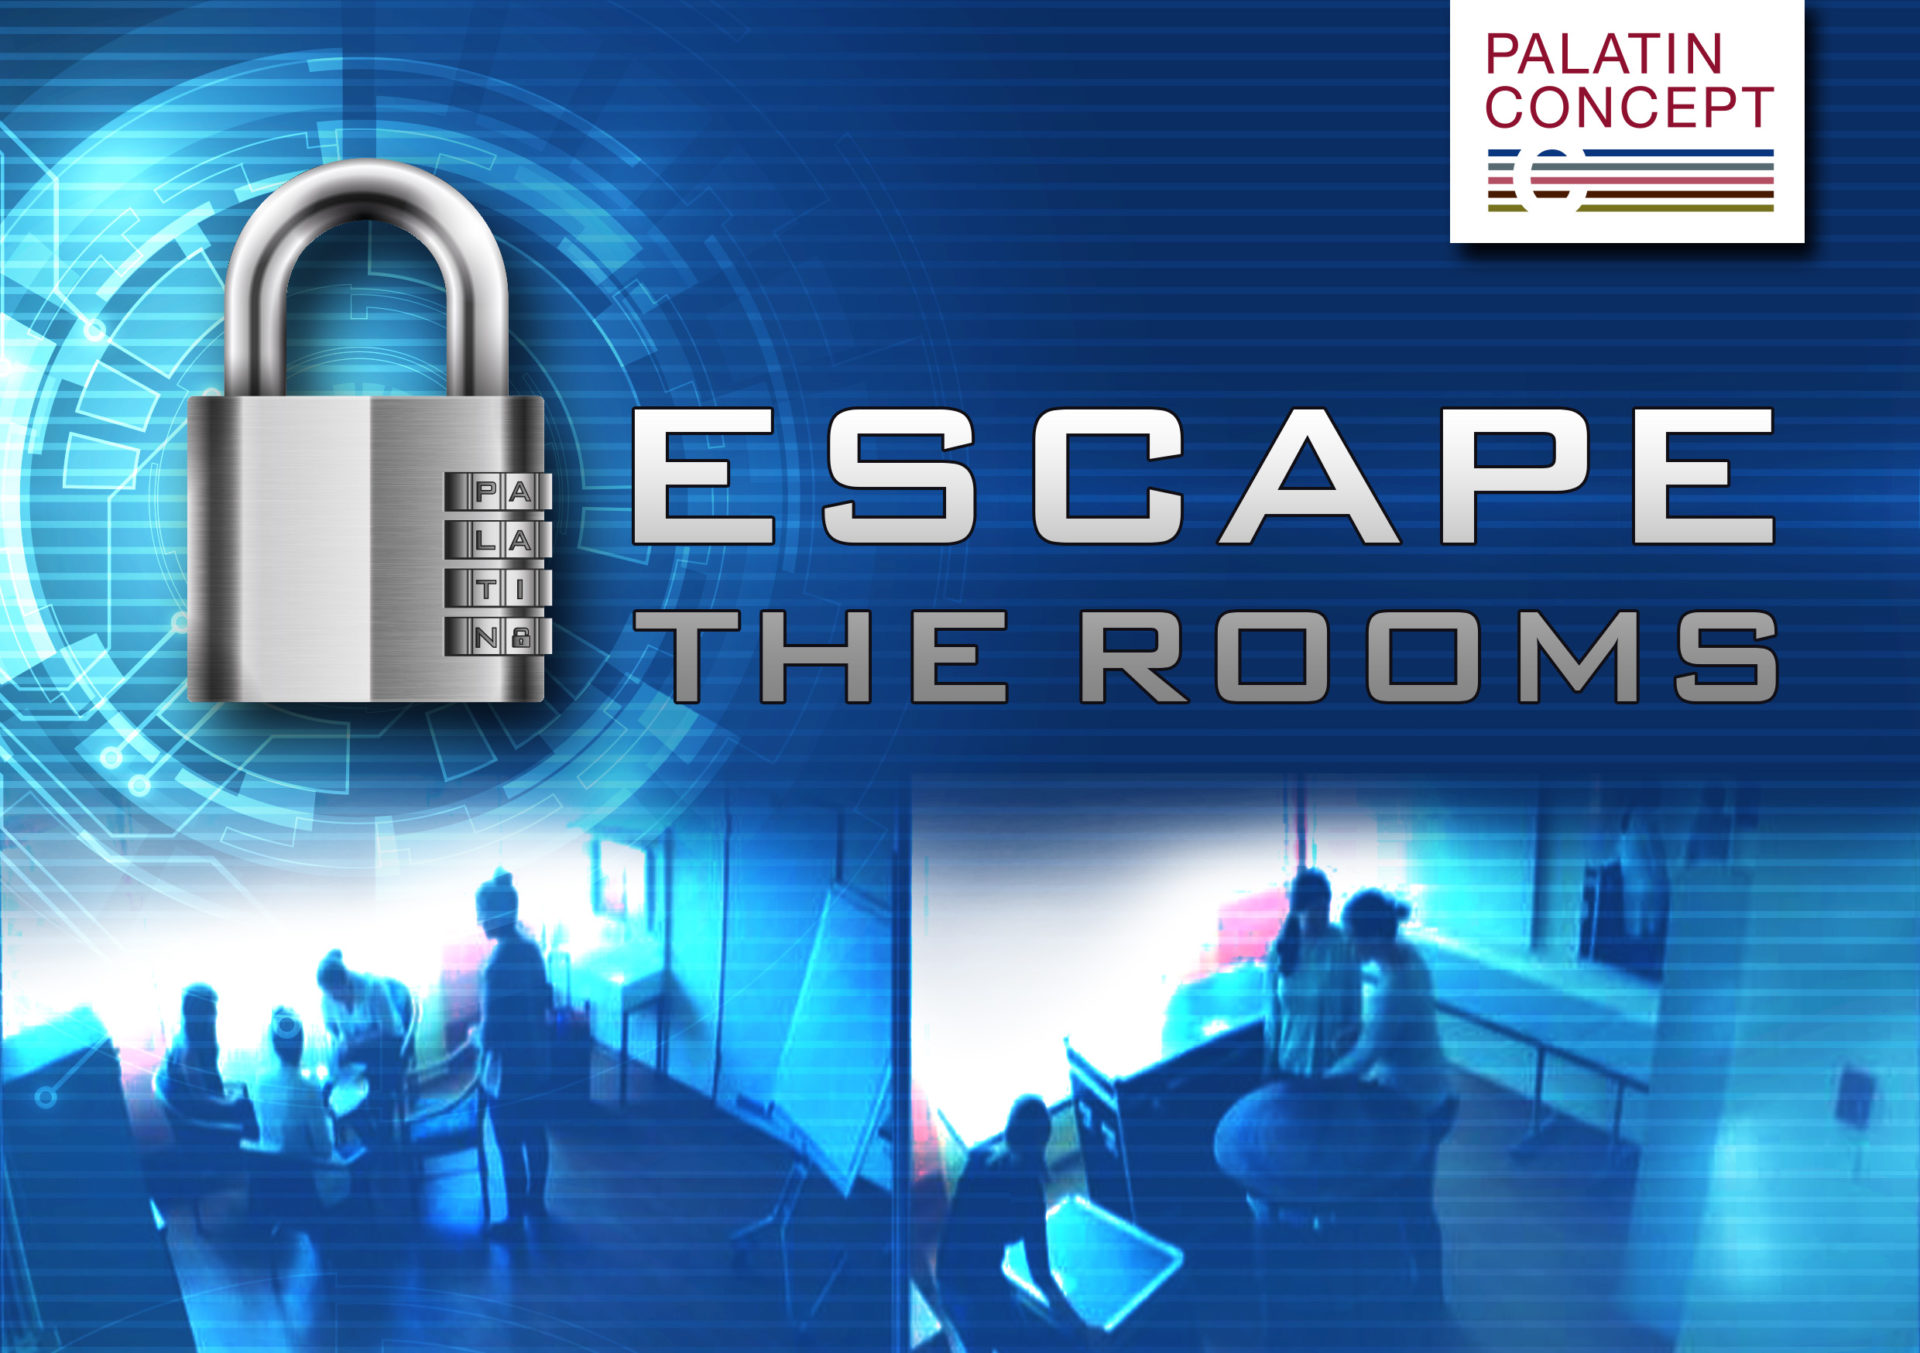 Palatin 2016 08 Escape the Rooms_Visual_RZ-v2